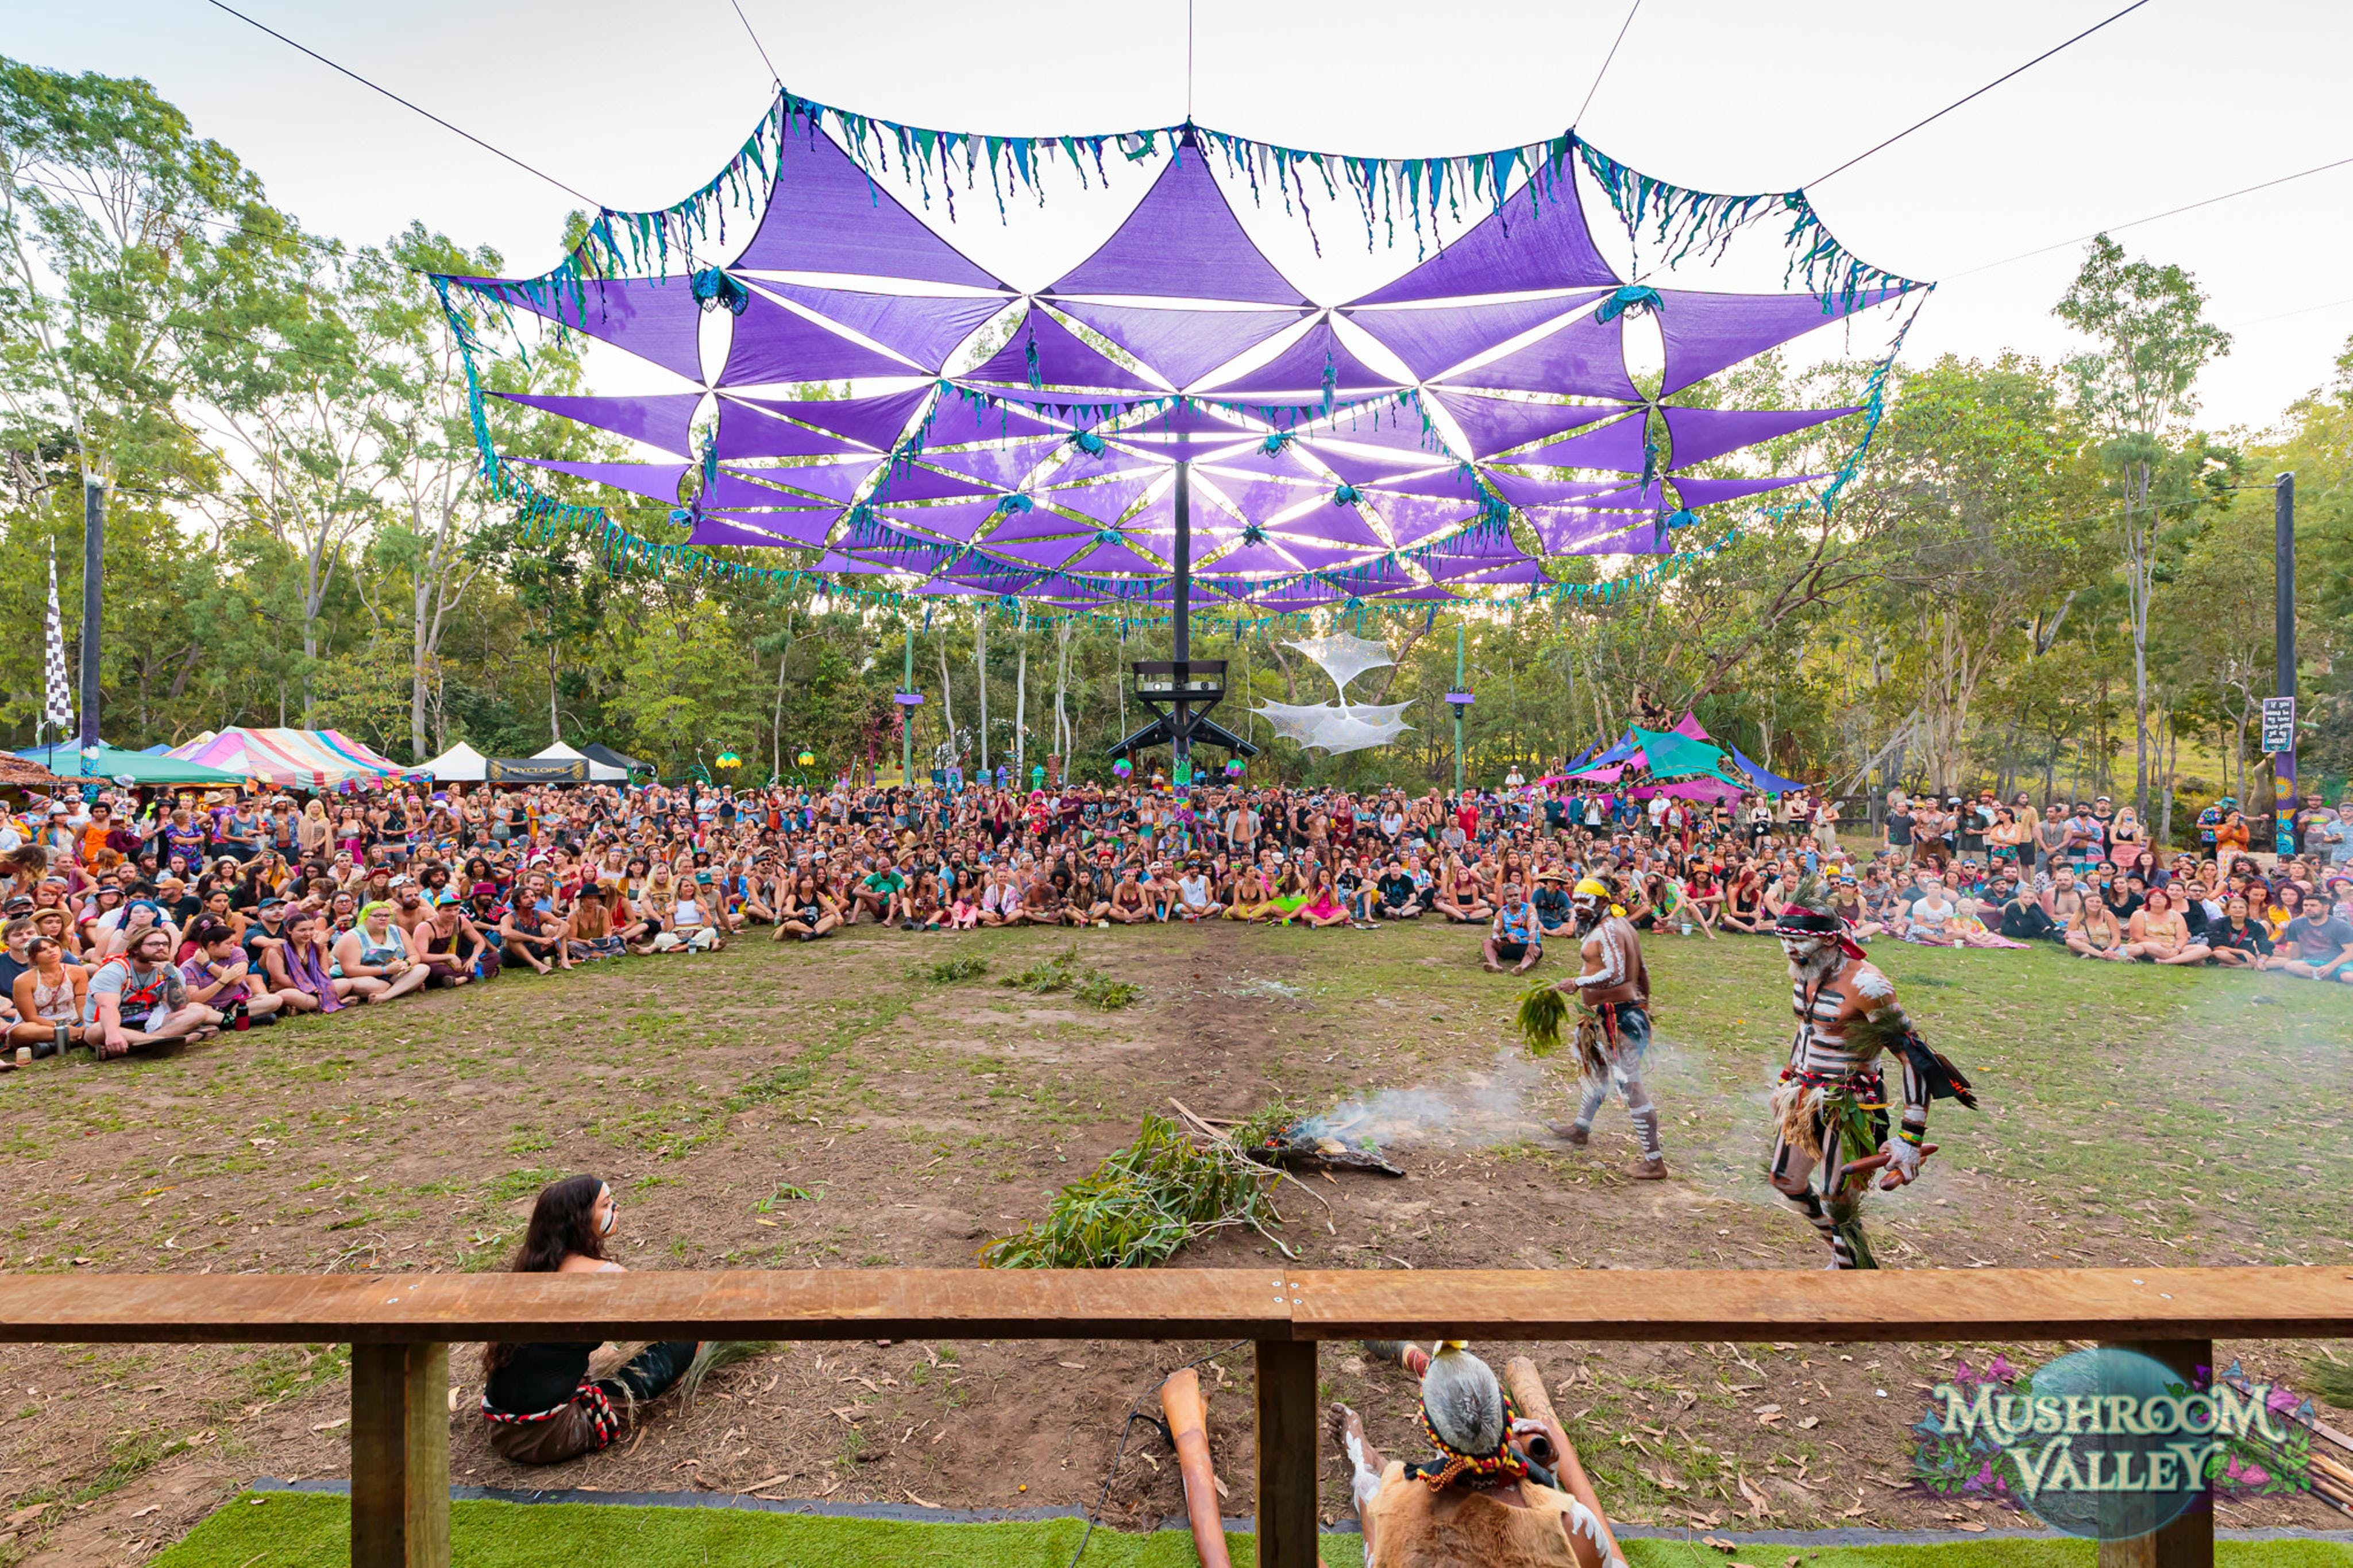 Mushroom Valley Festival - Tourism Brisbane